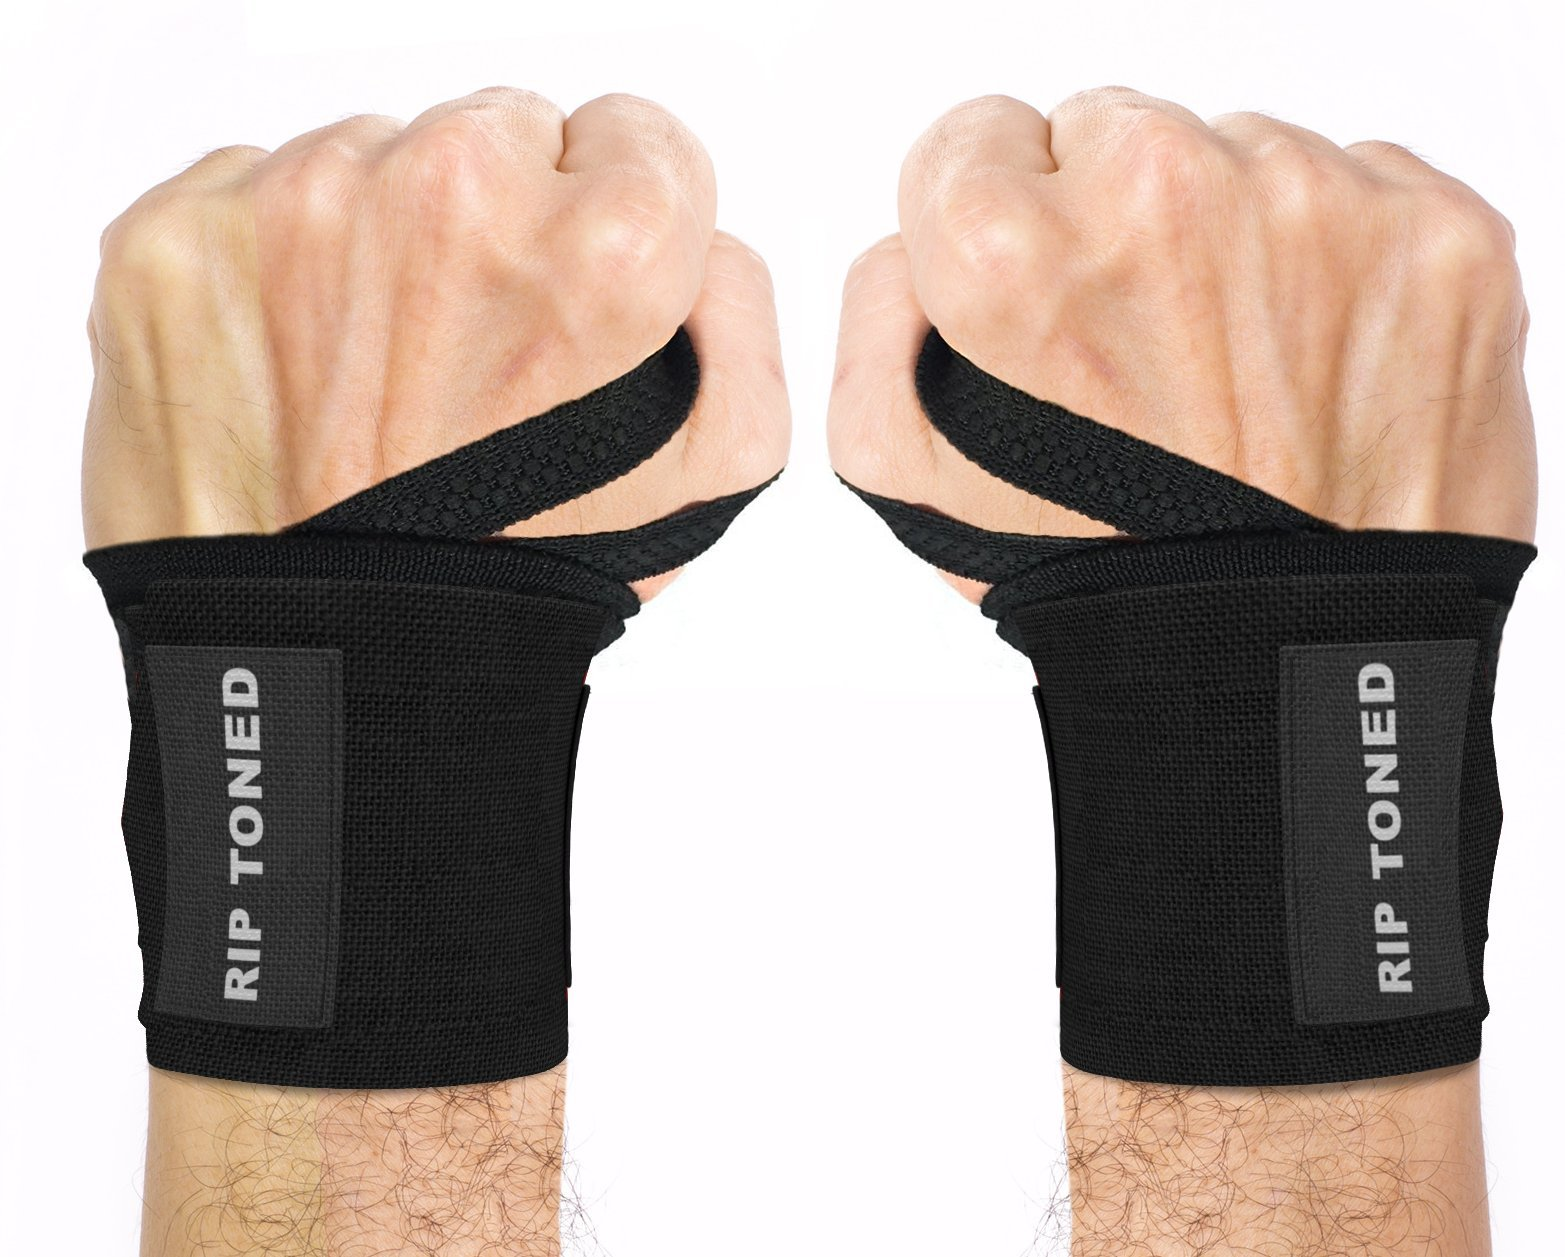 Rip Toned Wrist Wraps 18'' Professional Grade with Thumb Loops - Wrist Support Braces for Men & Women - Weight Lifting, Crossfit, Powerlifting, Strength Training - Bonus Ebook (Black Stiff) by Rip Toned